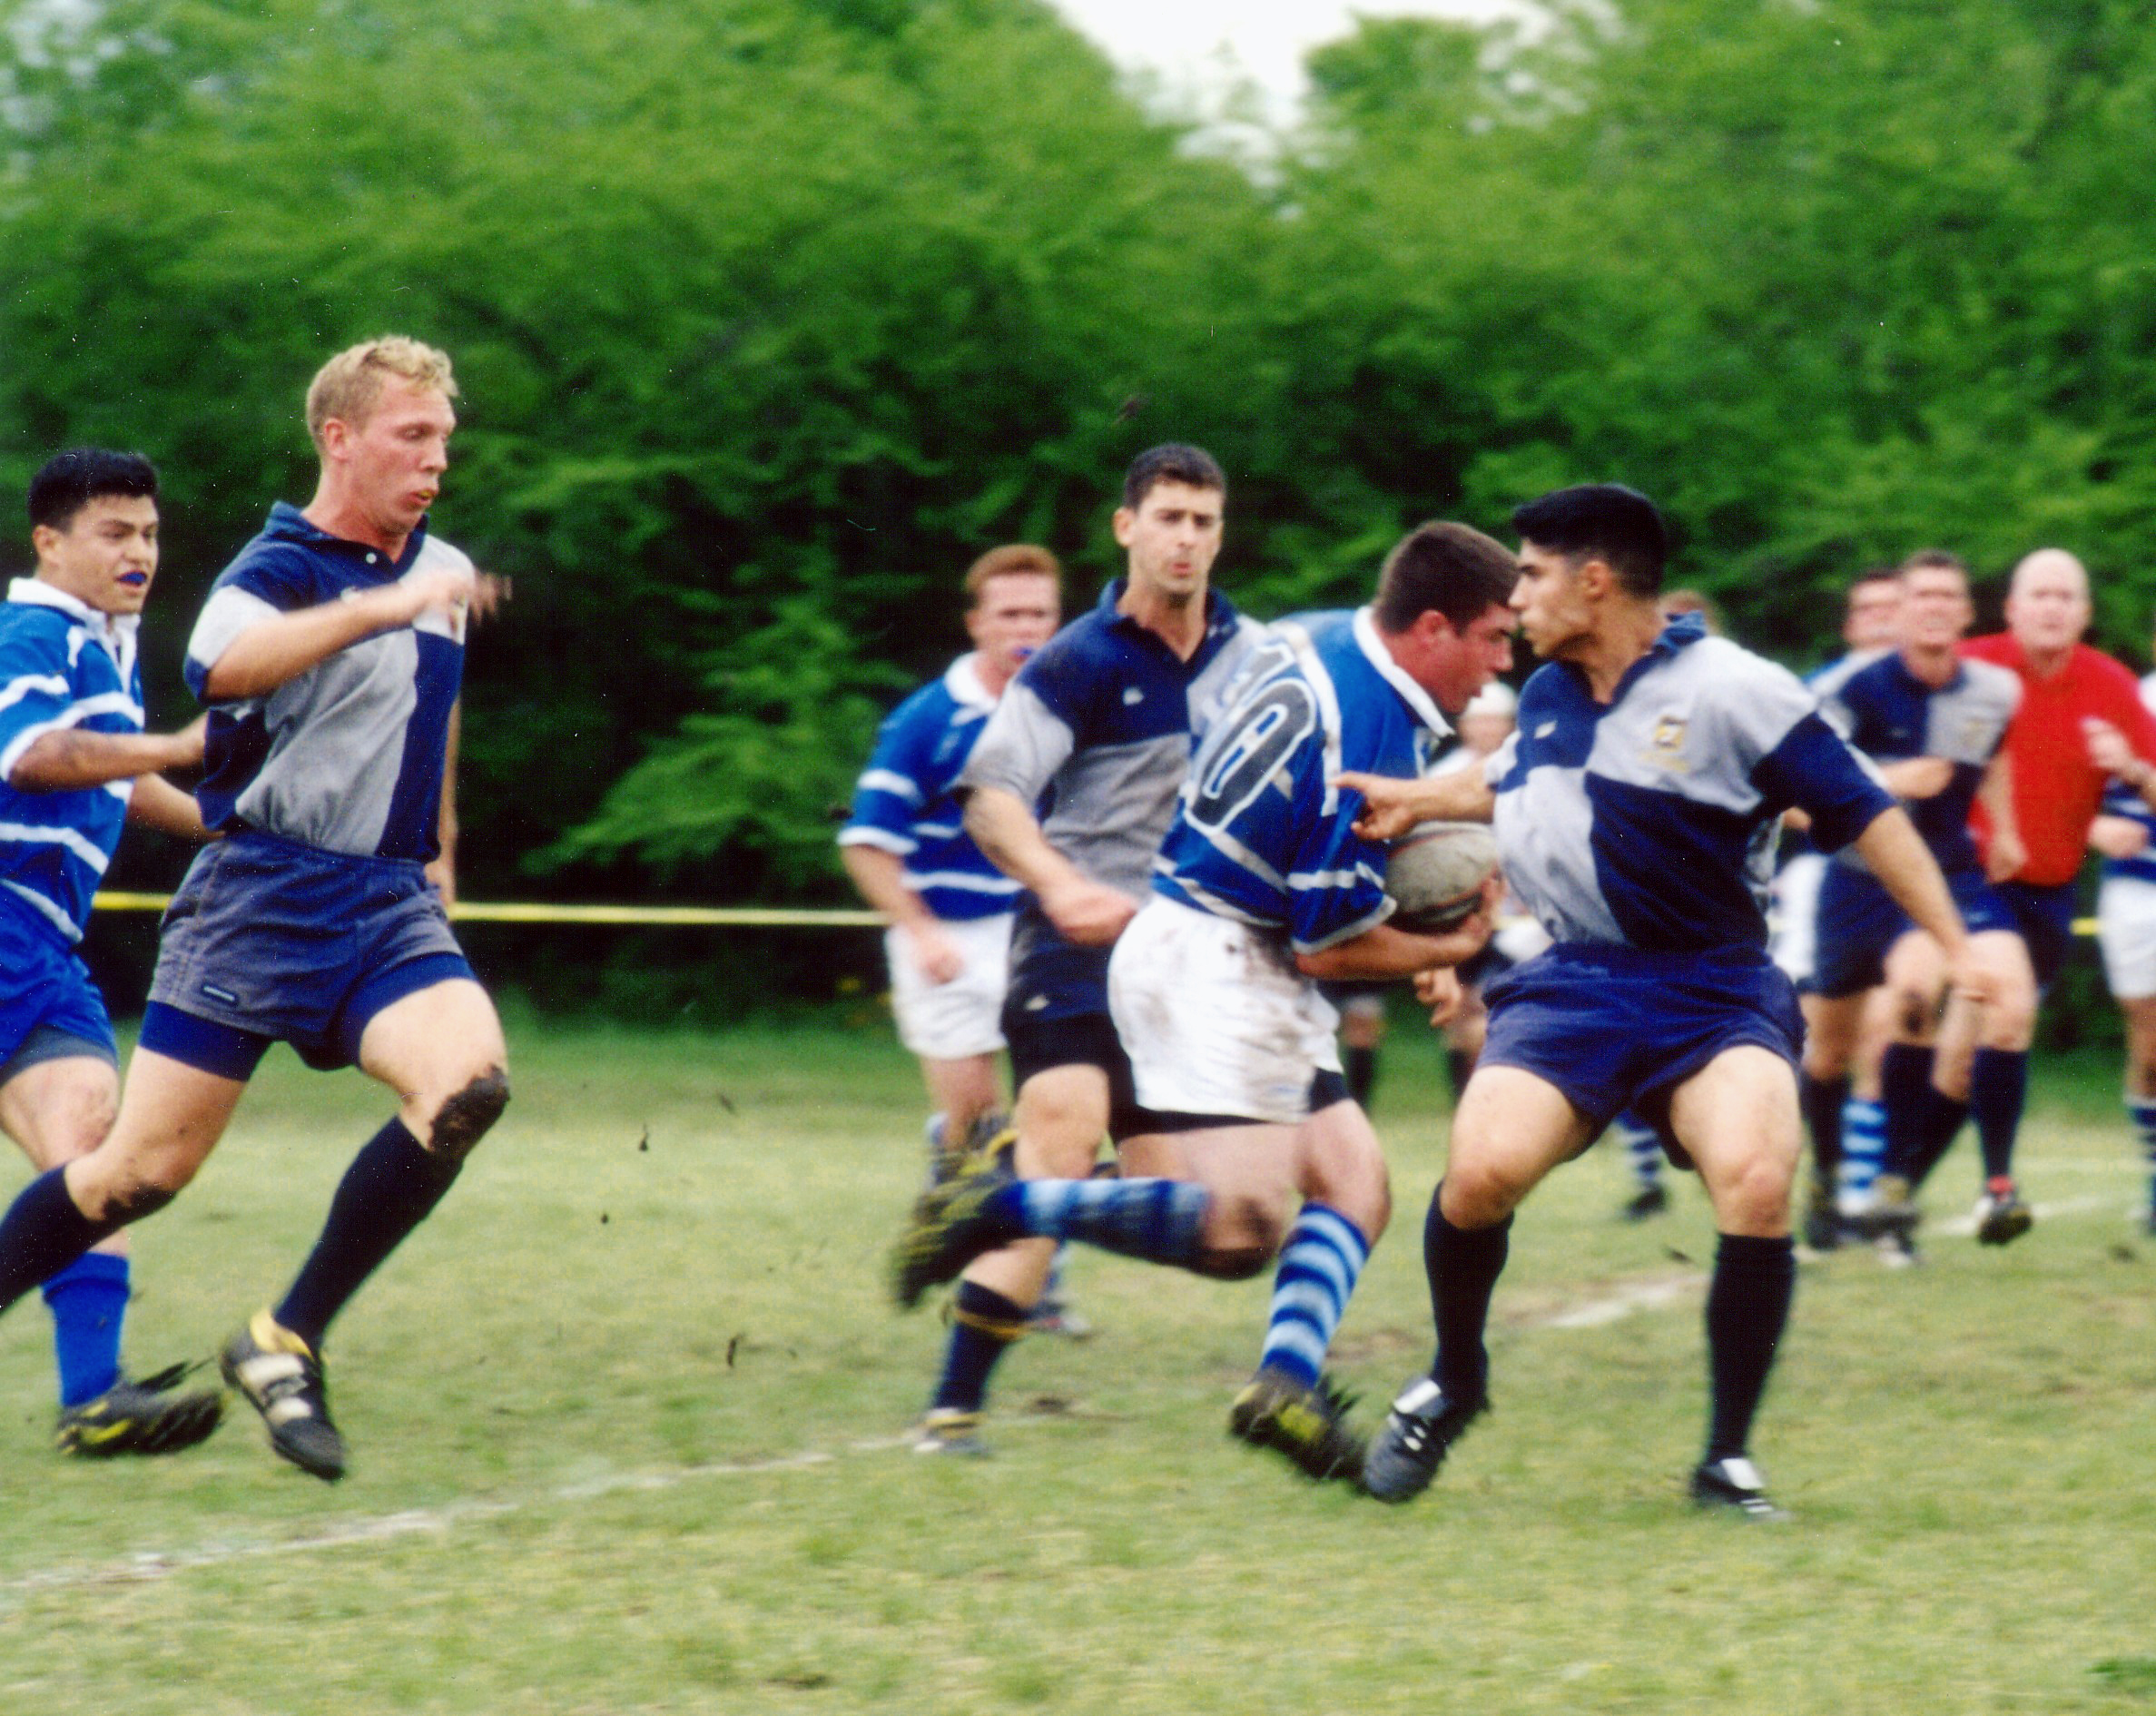 Naked rugby soccer team photos